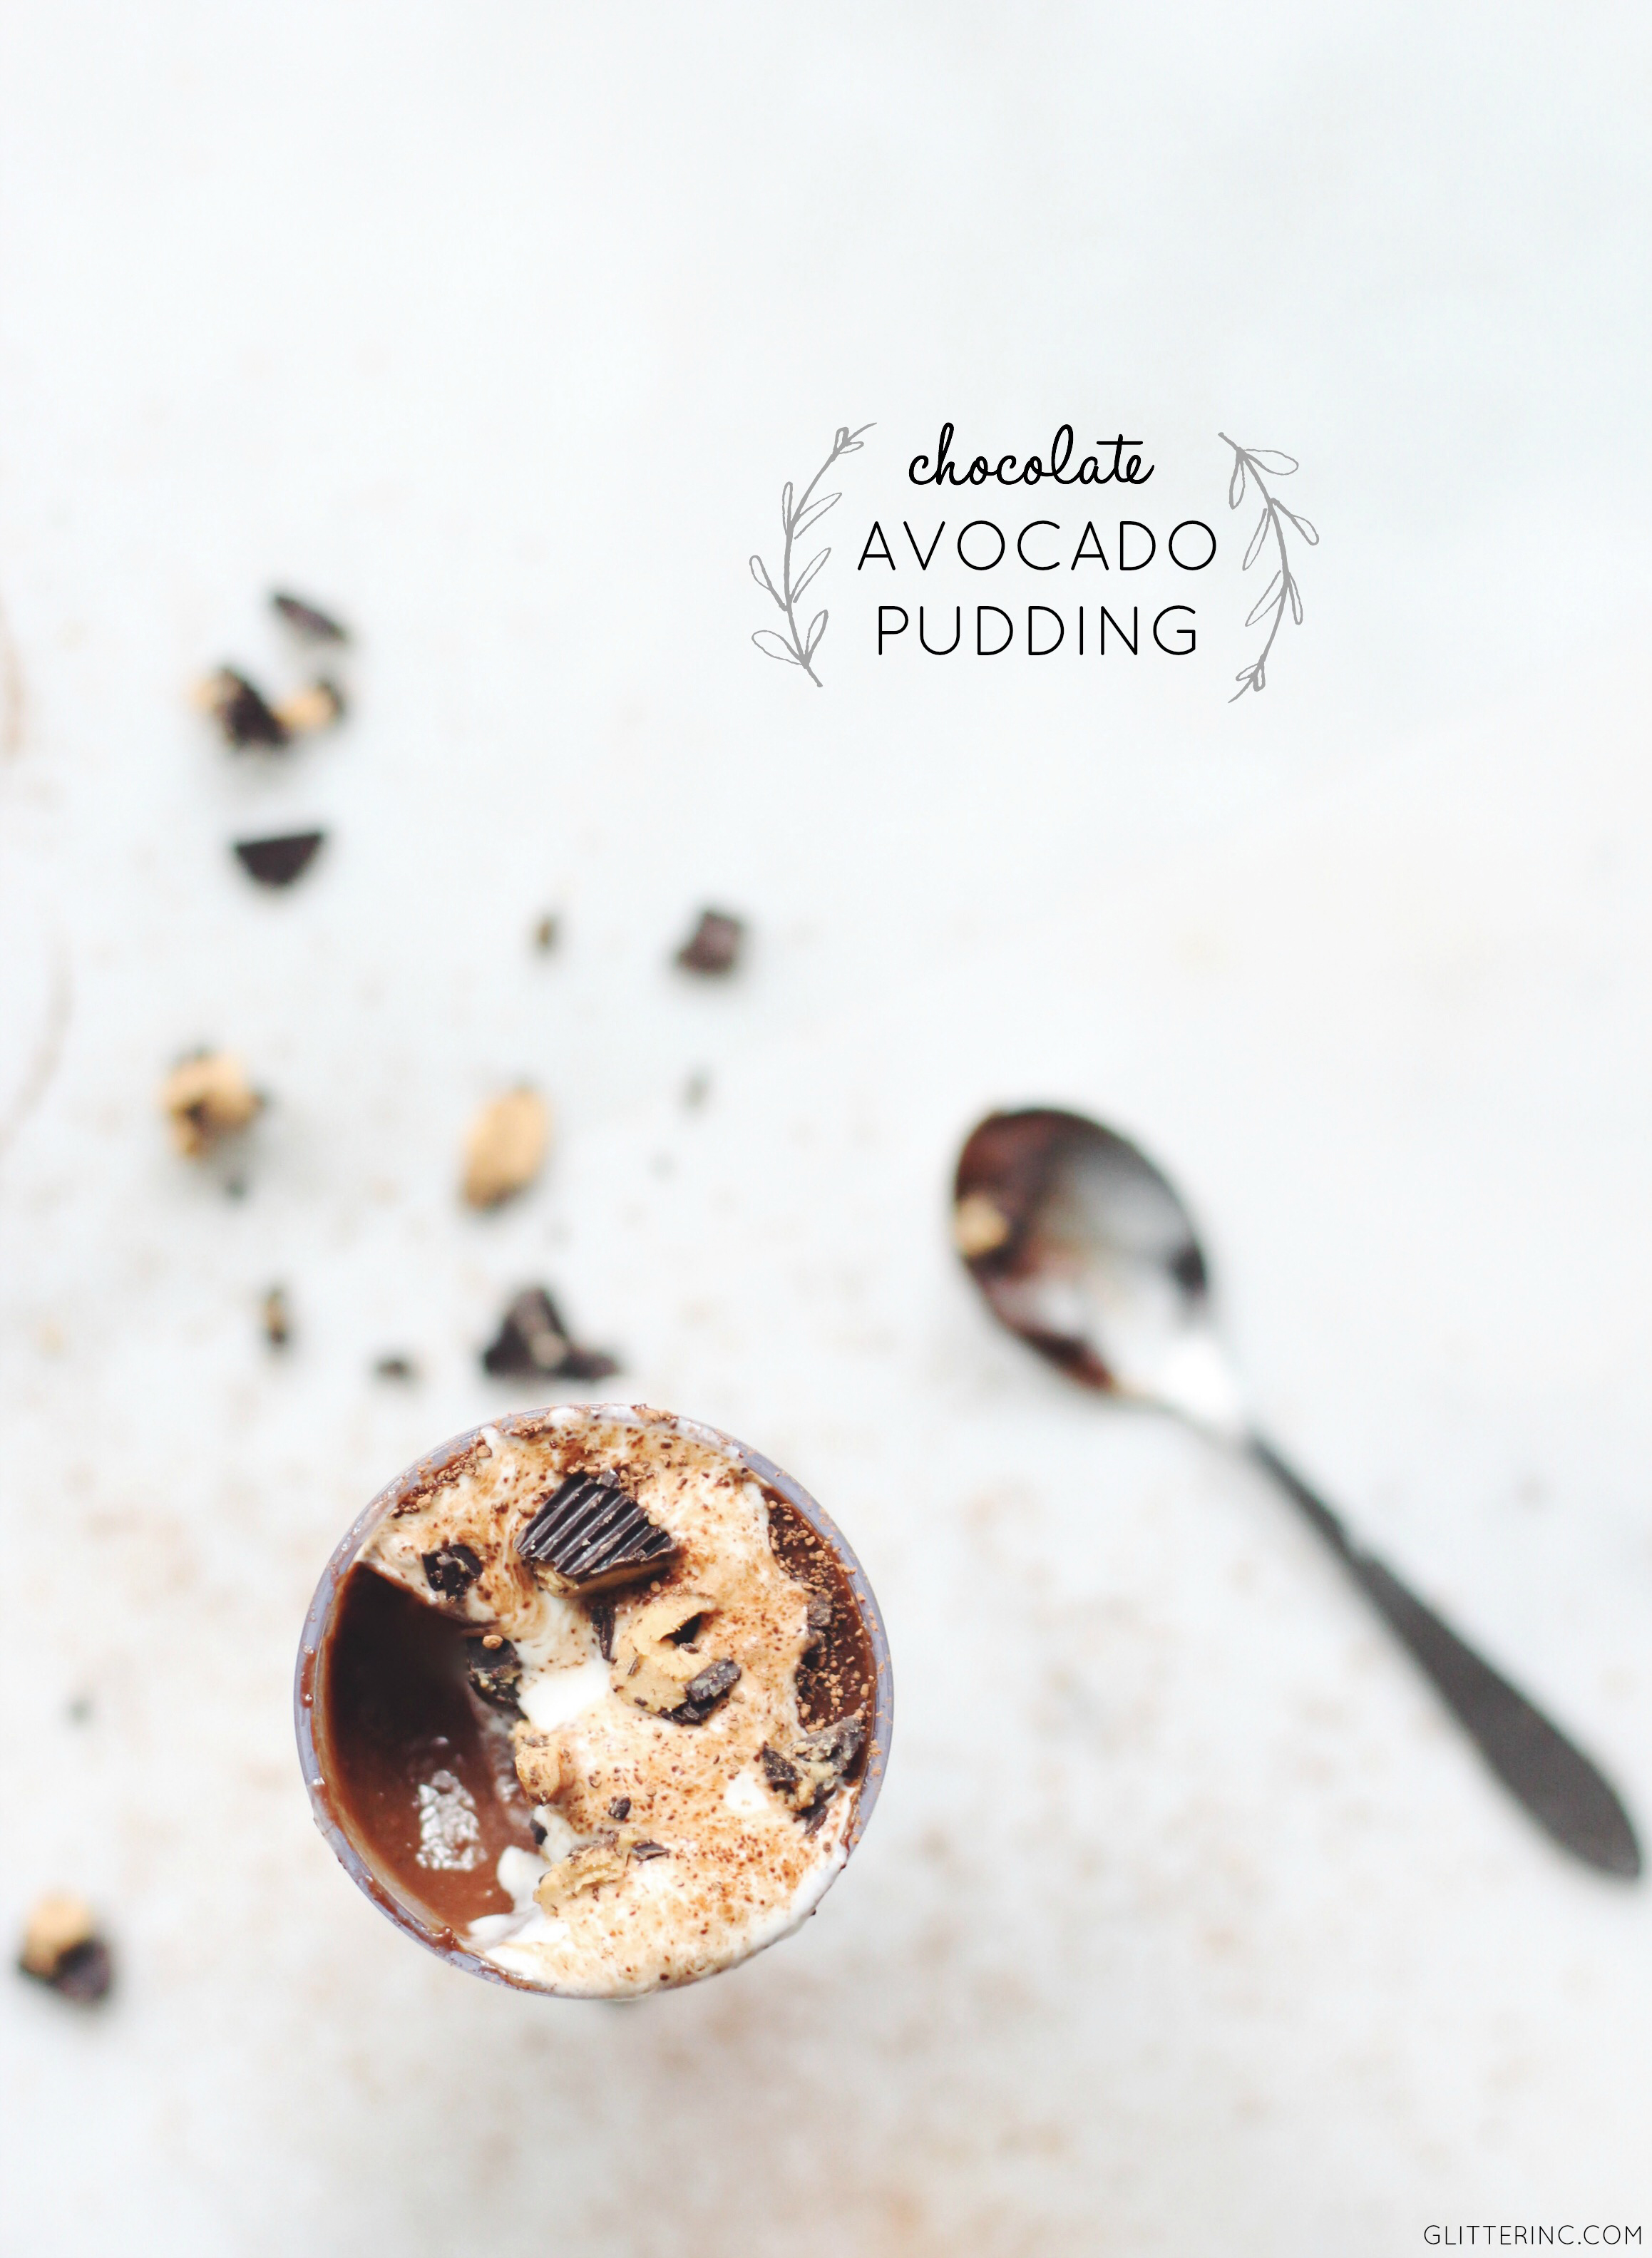 How to make chocolate (peanut butter cup) avocado pudding. Once you add avocado to your pudding, you'll never go back. | glitterinc.com | @glitterinc